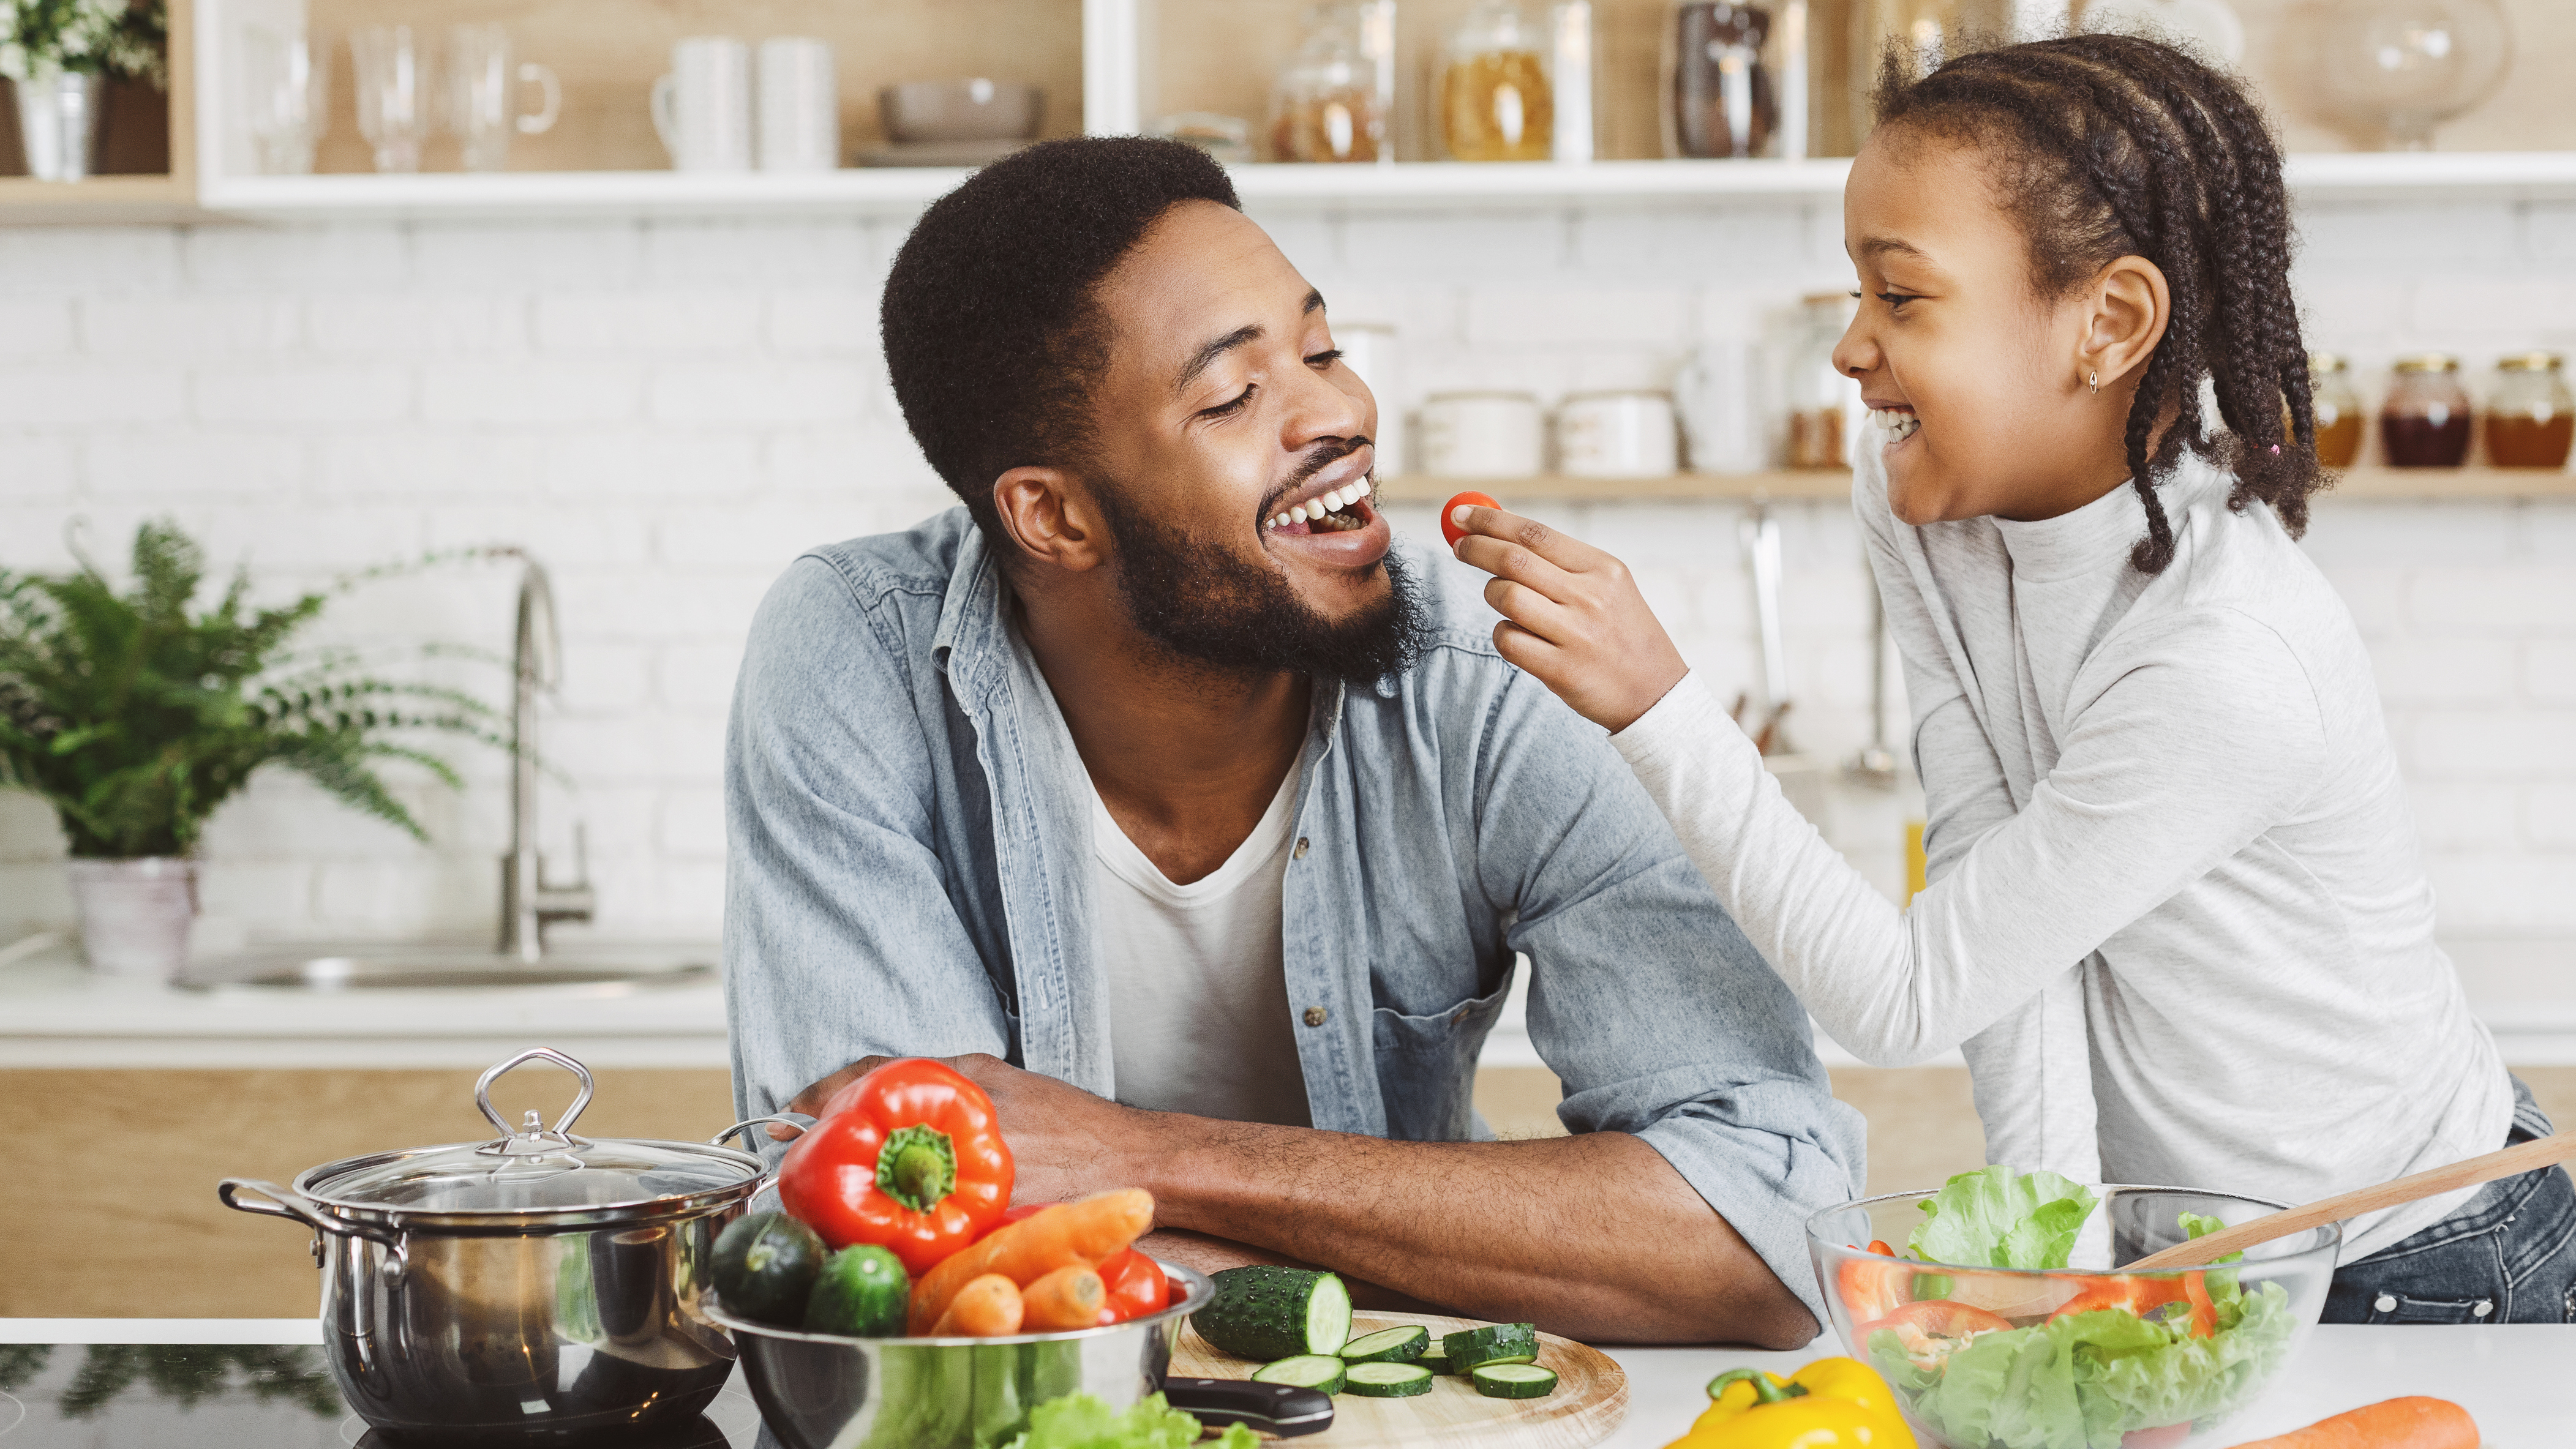 Dad and daughter eating healthy